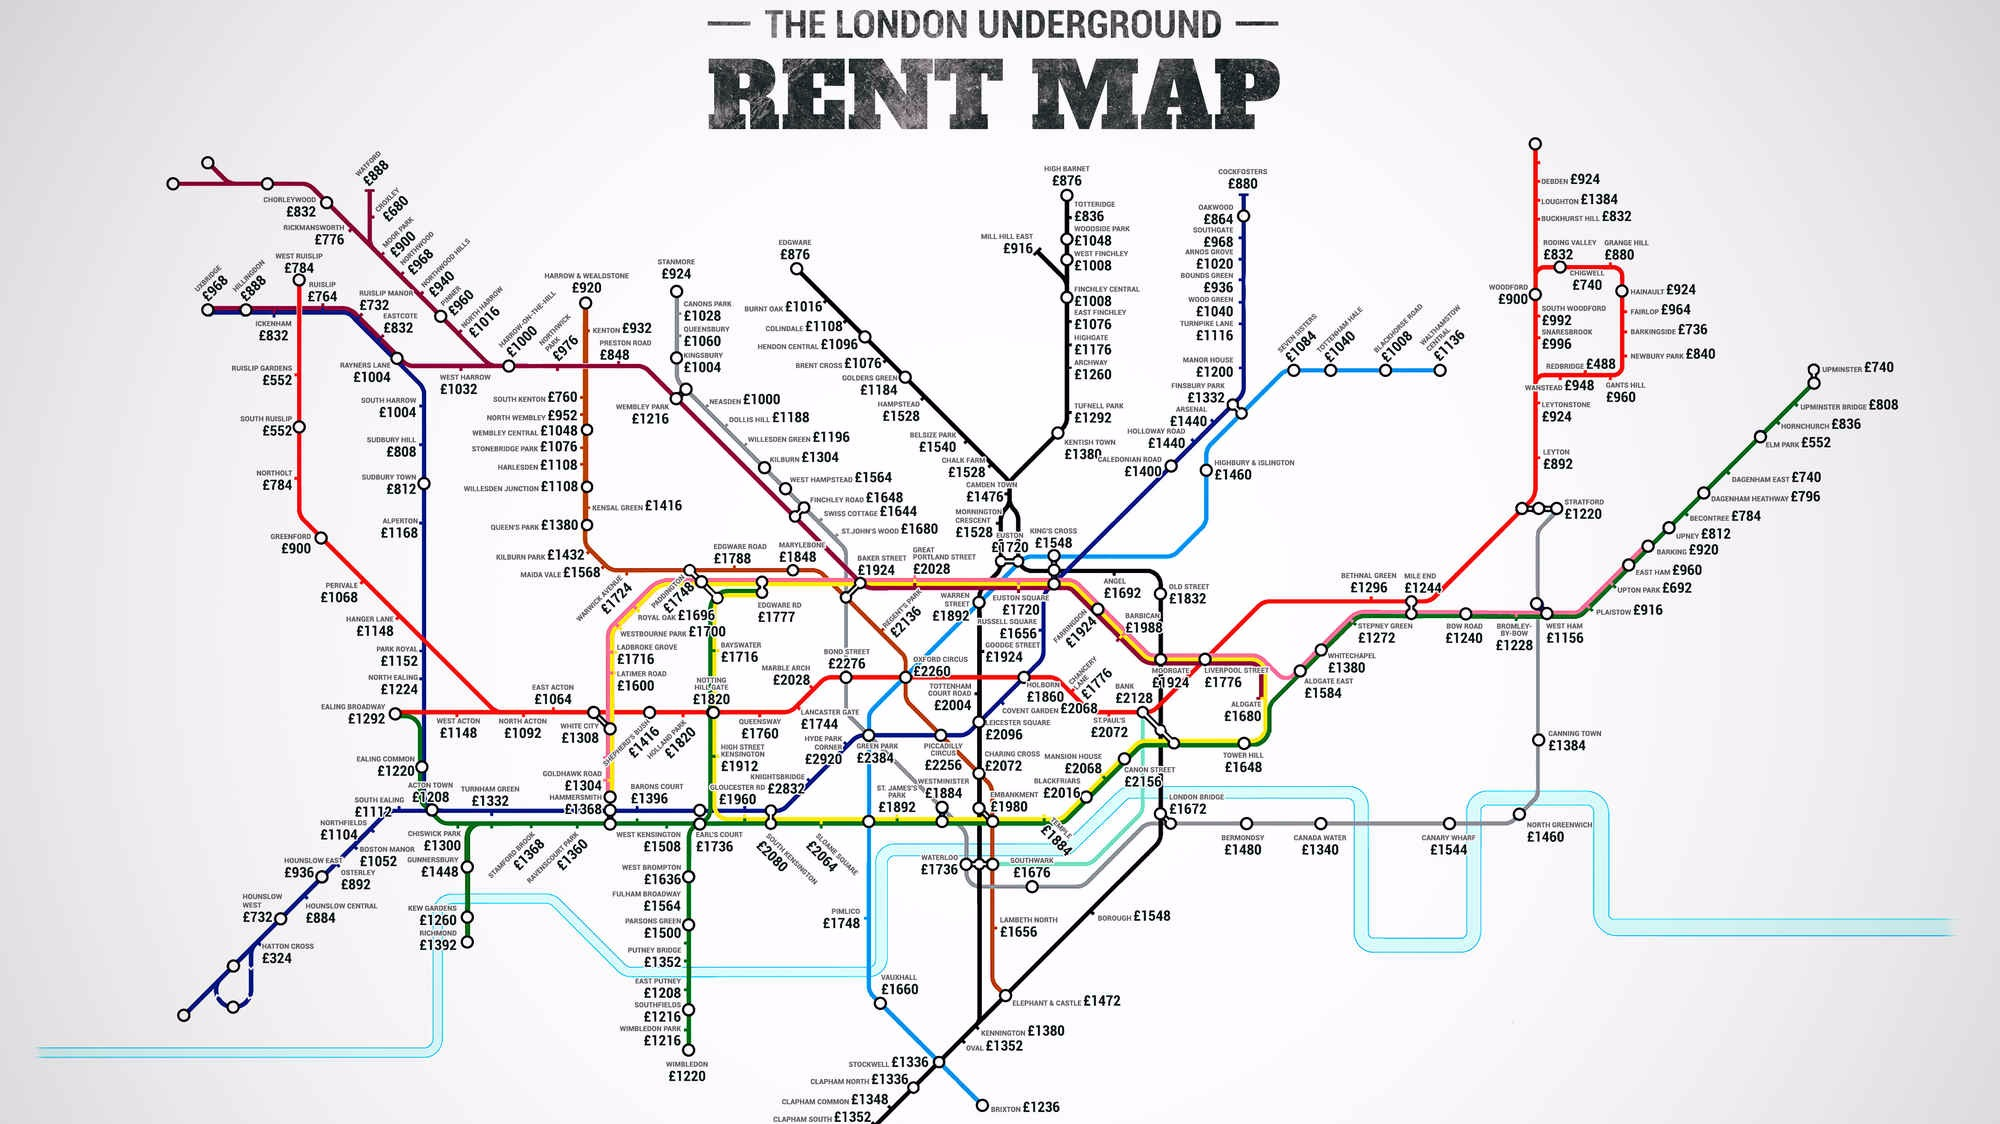 Map shows London rents by tube station   London - ITV News